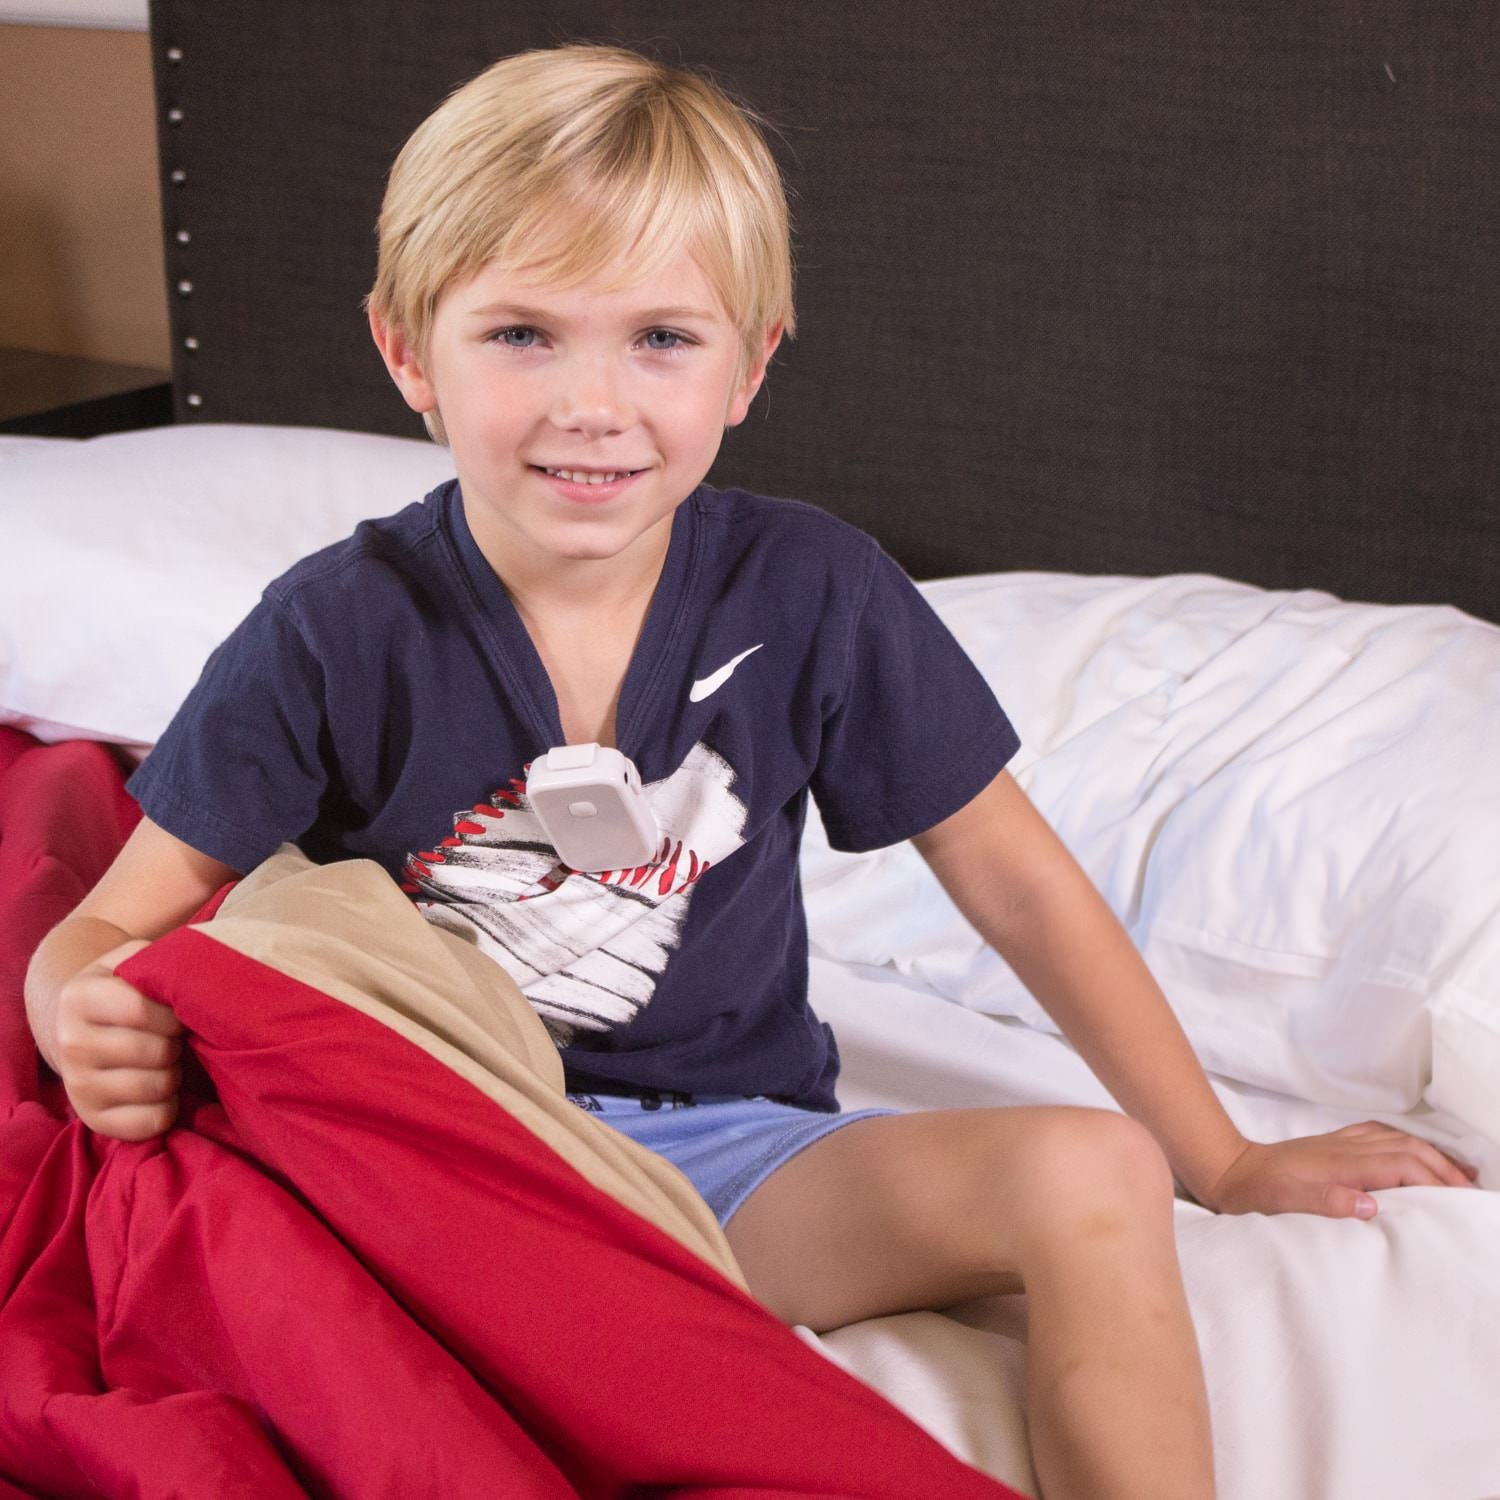 wet stop bedwetting alarm instructions